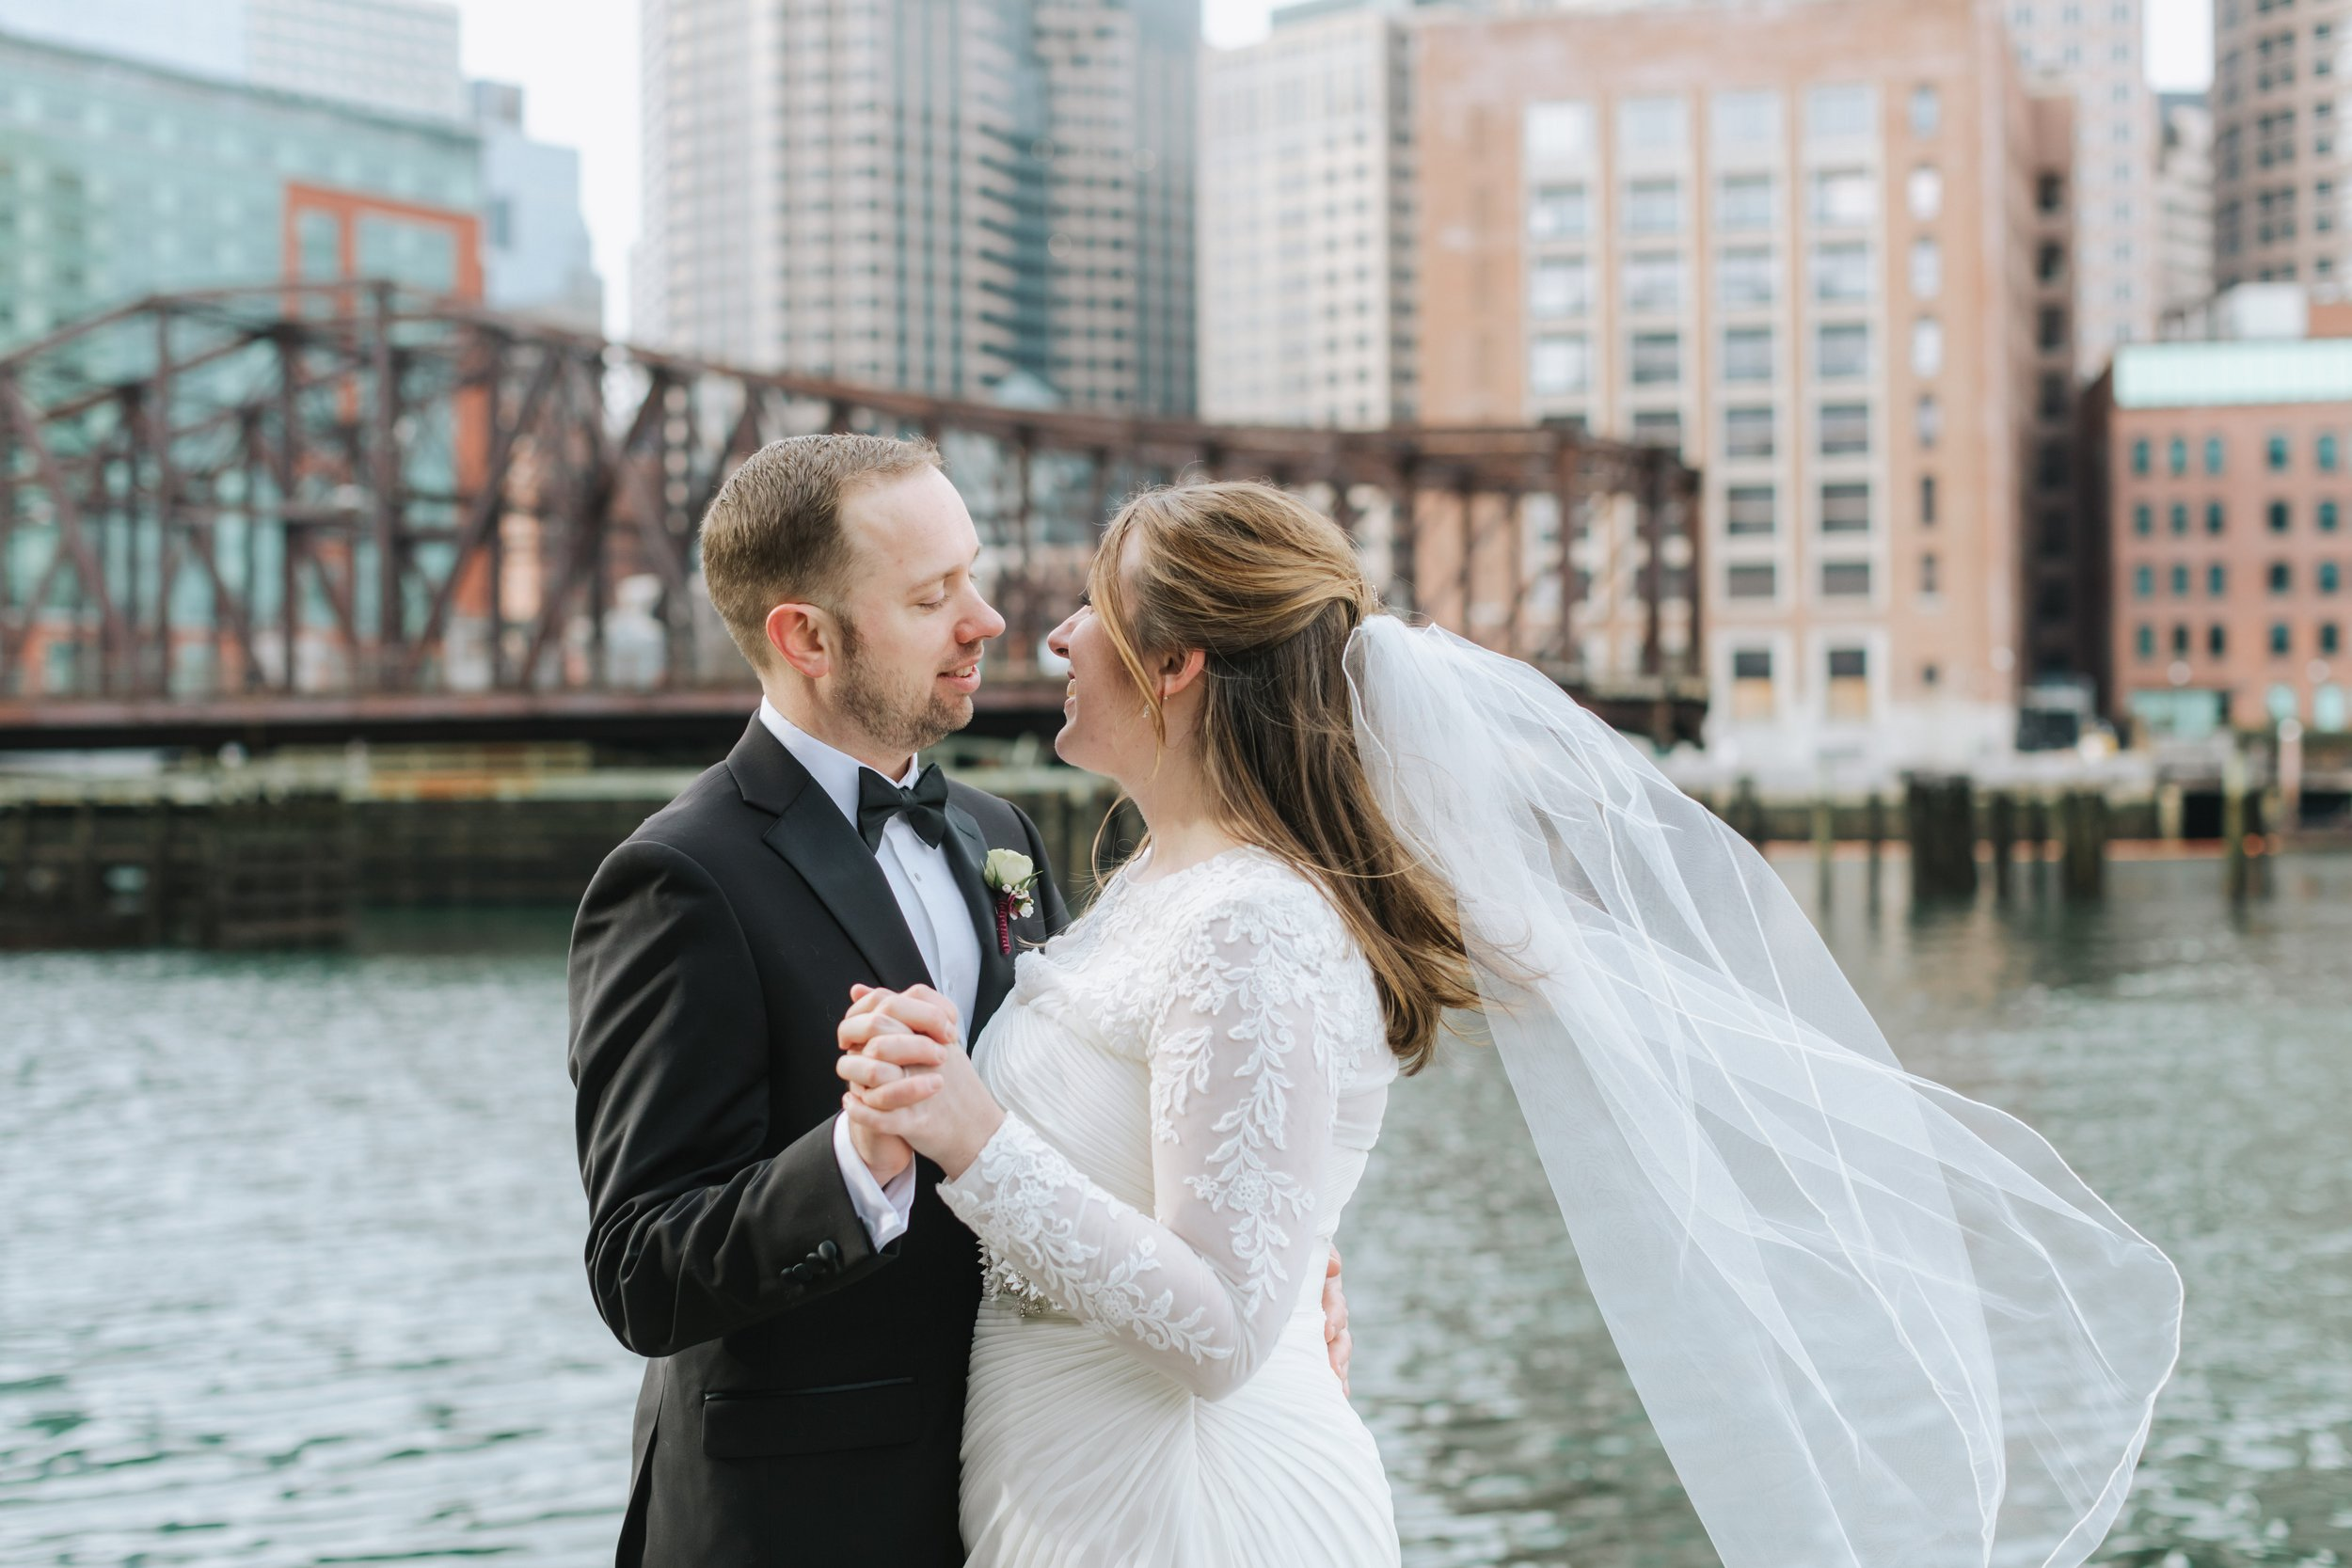 Seaport-Boston-City-Hall-Wedding-Elopement-Lena-Mirisola-8.JPG